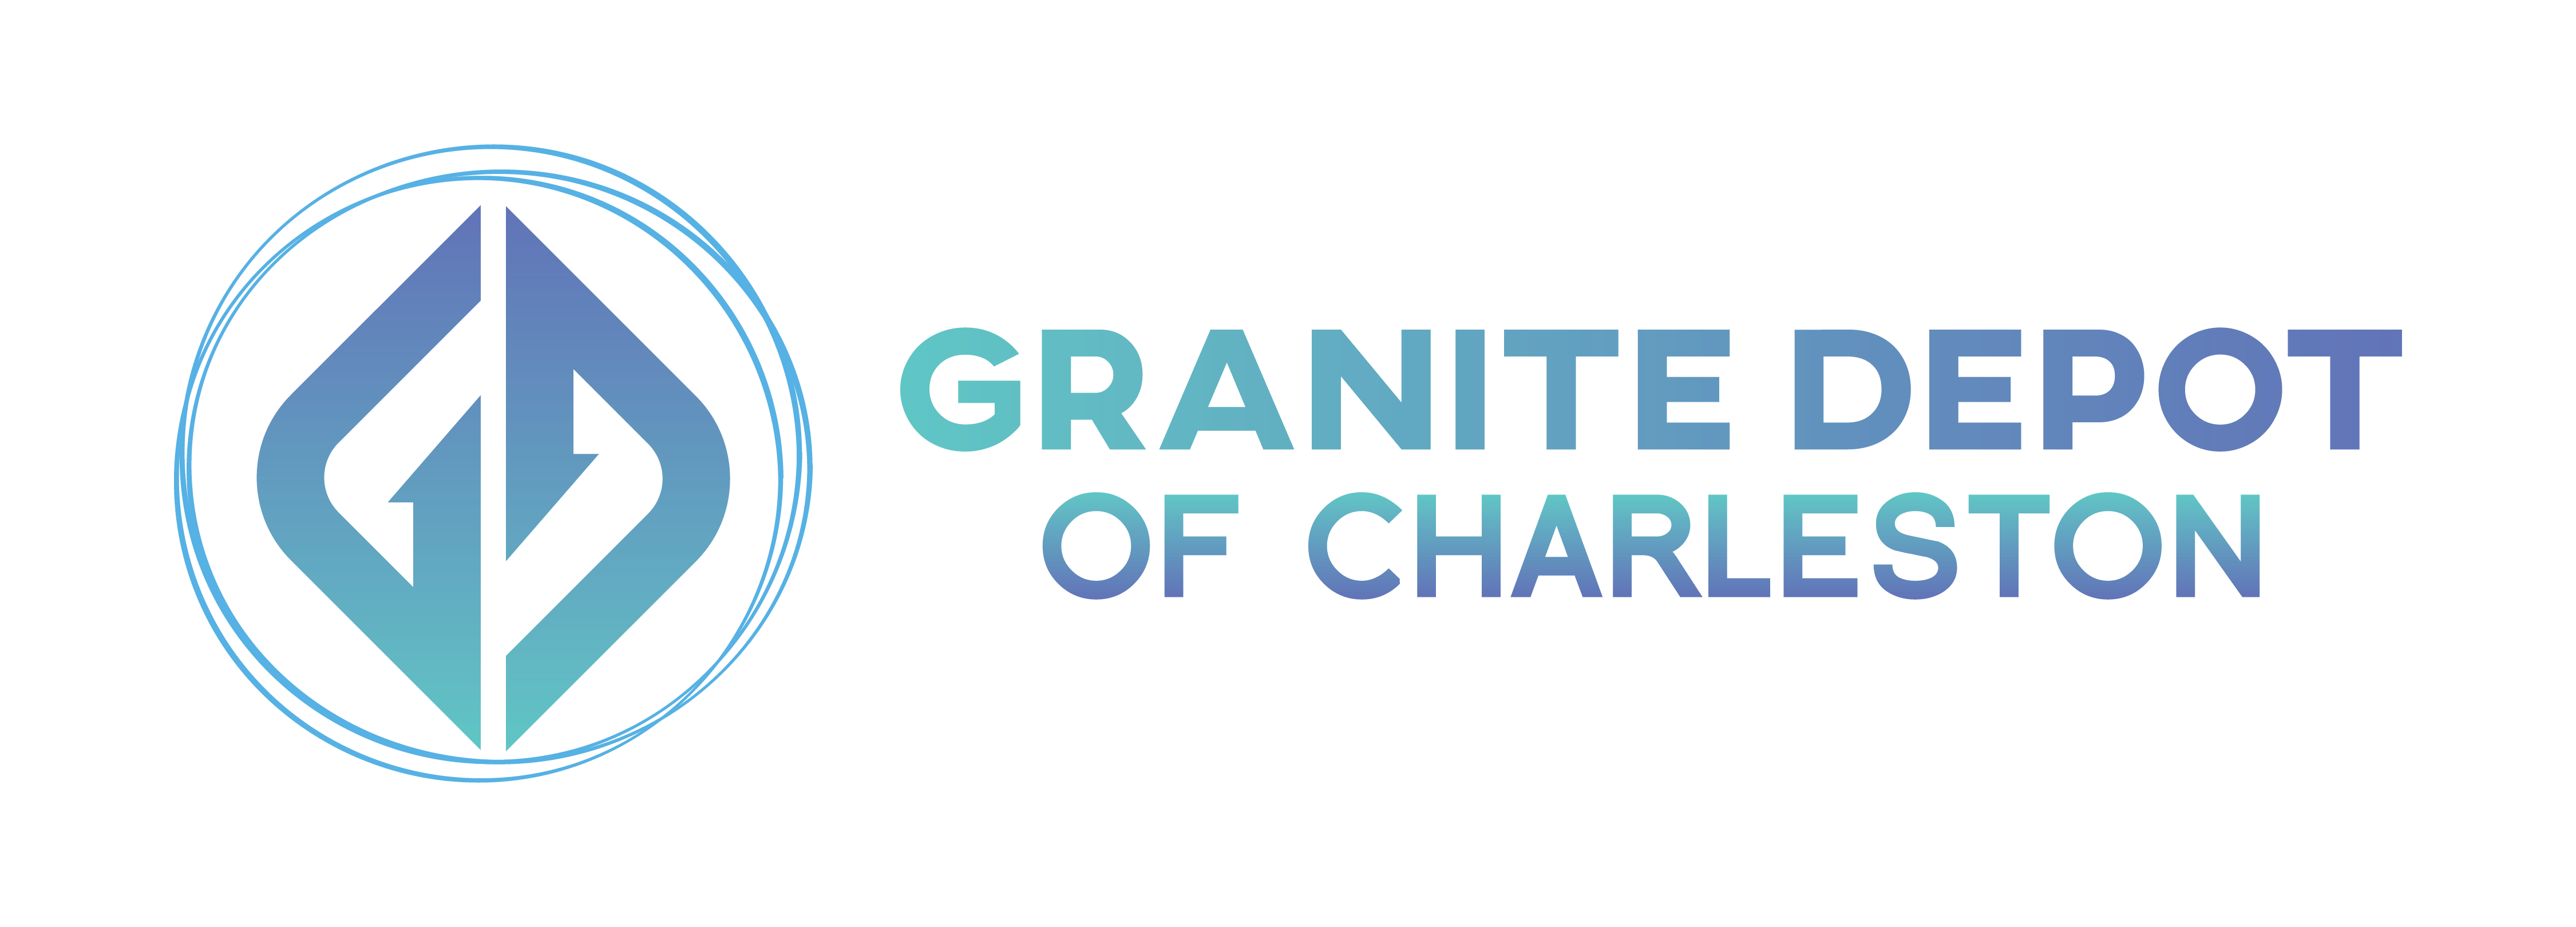 https://www.granitedepotcharleston.com/